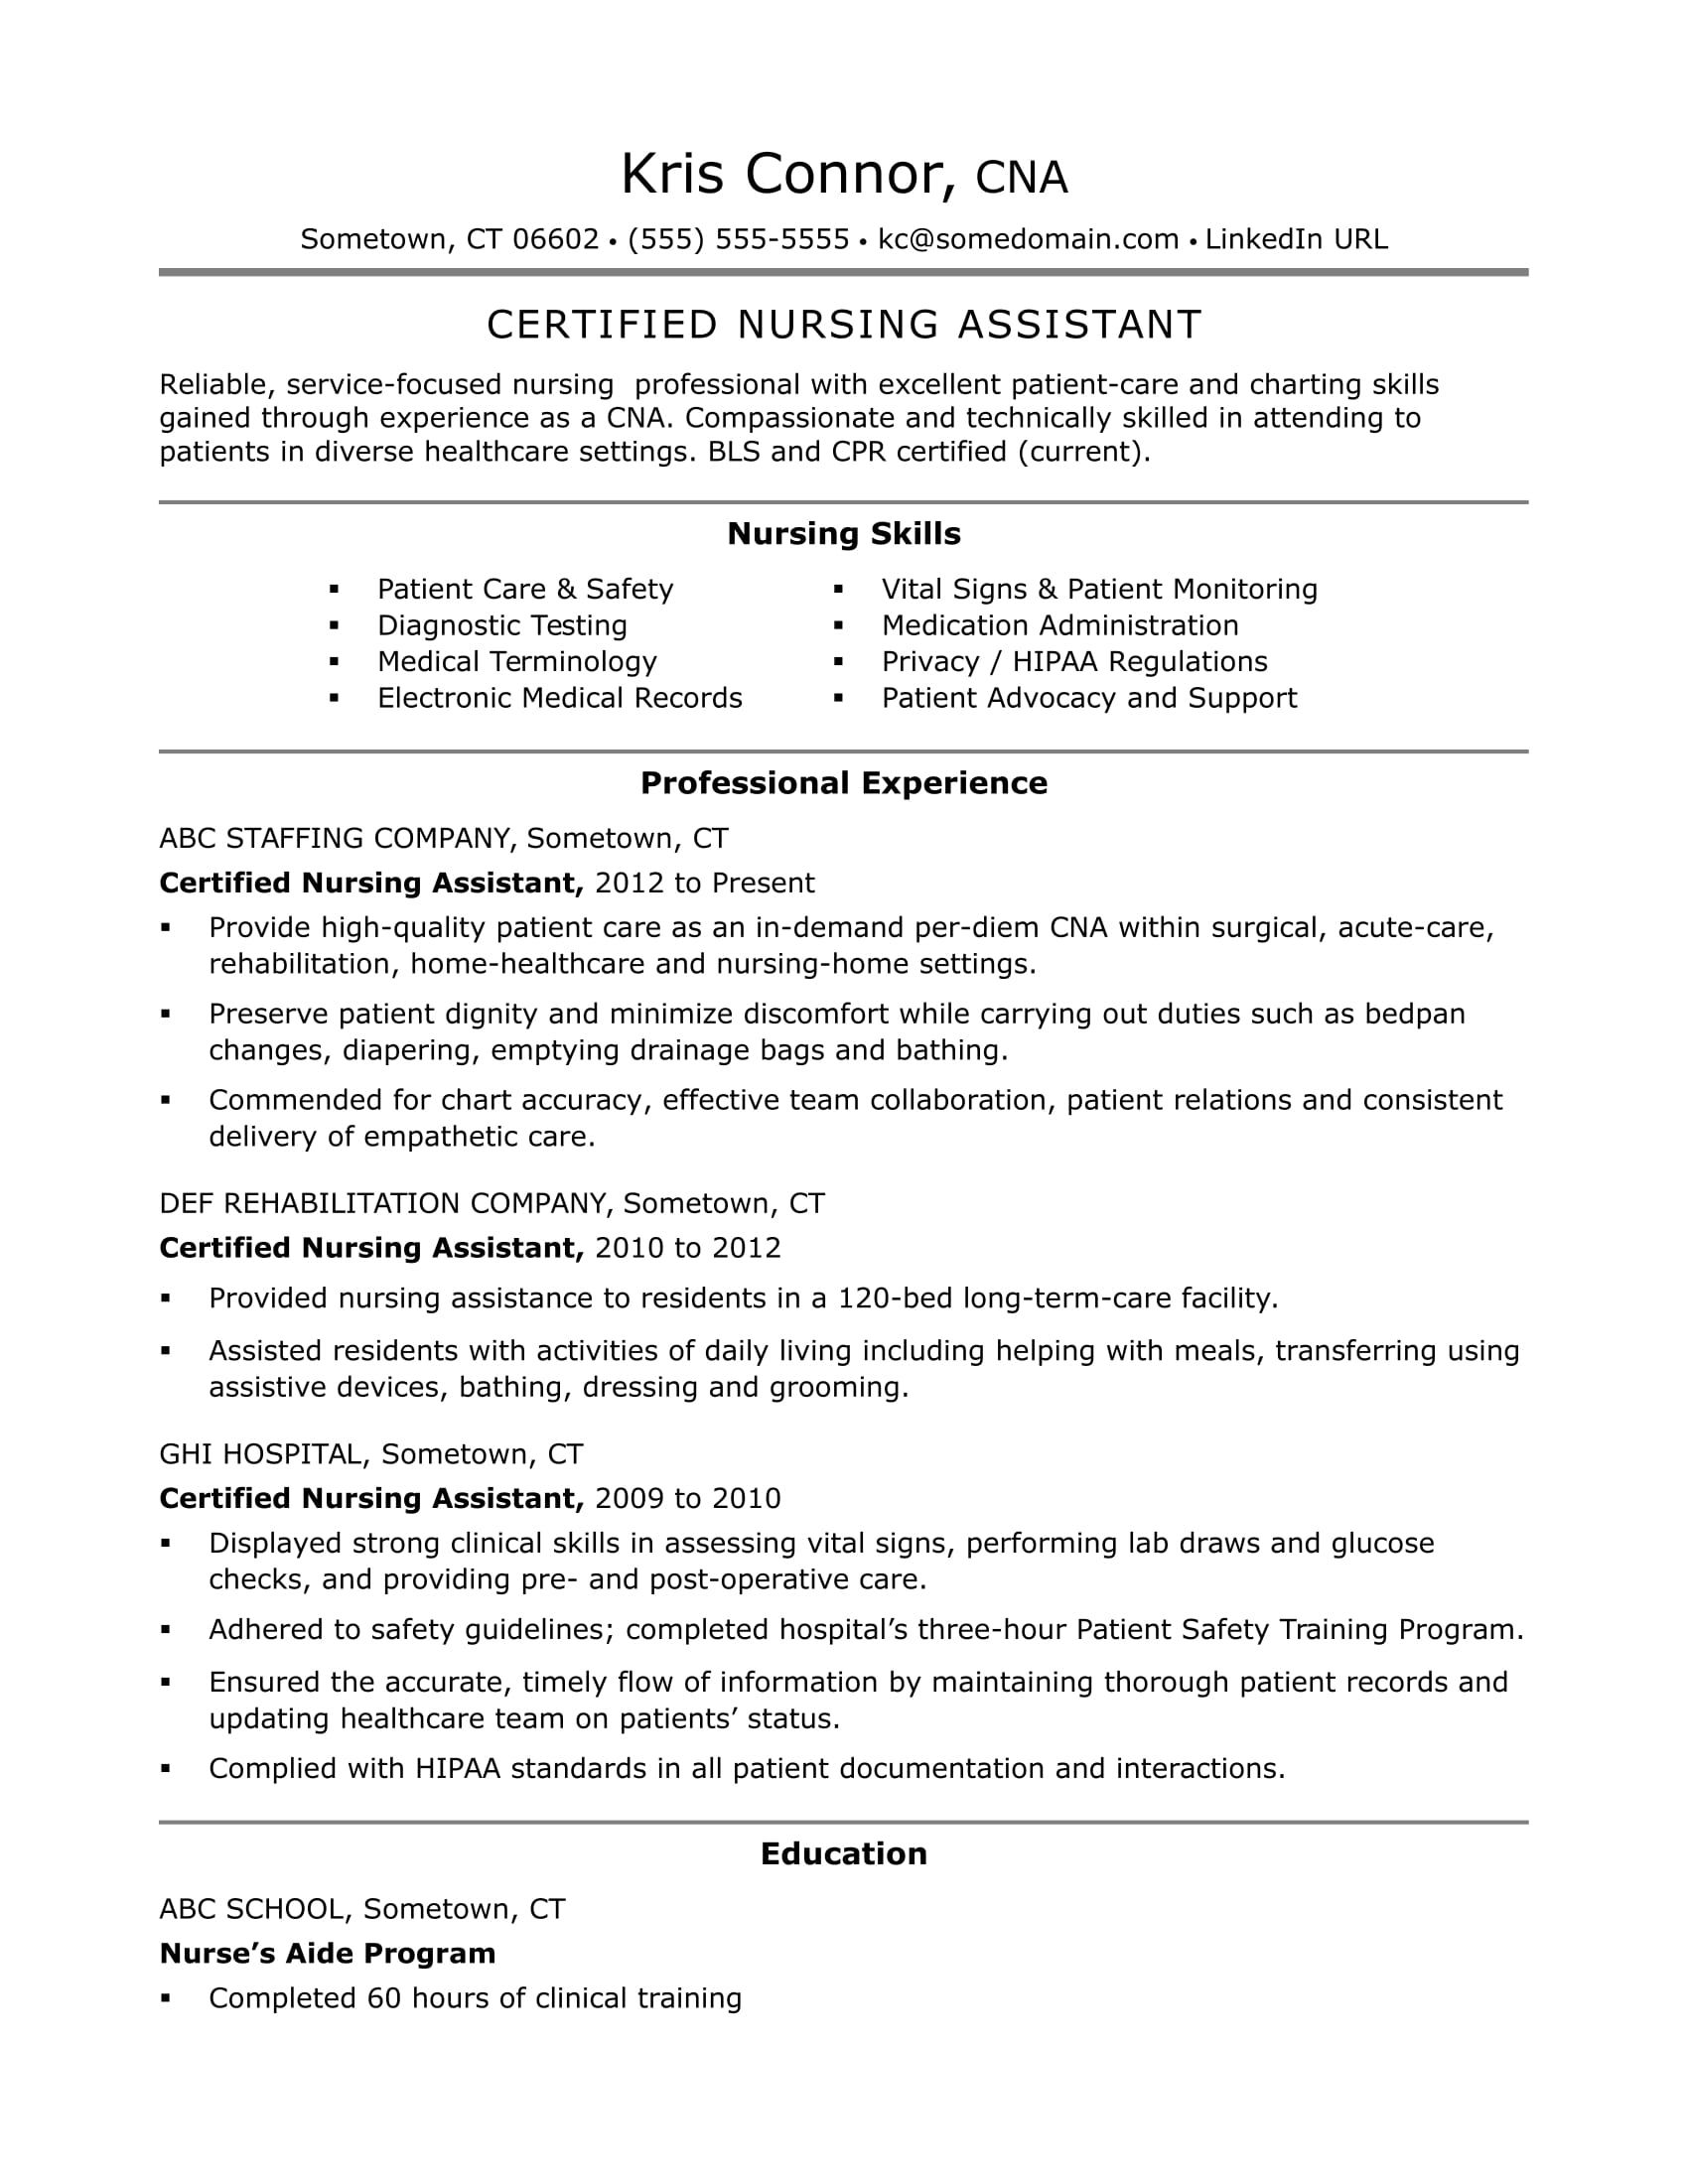 Resume For Certified Nursing Assistant